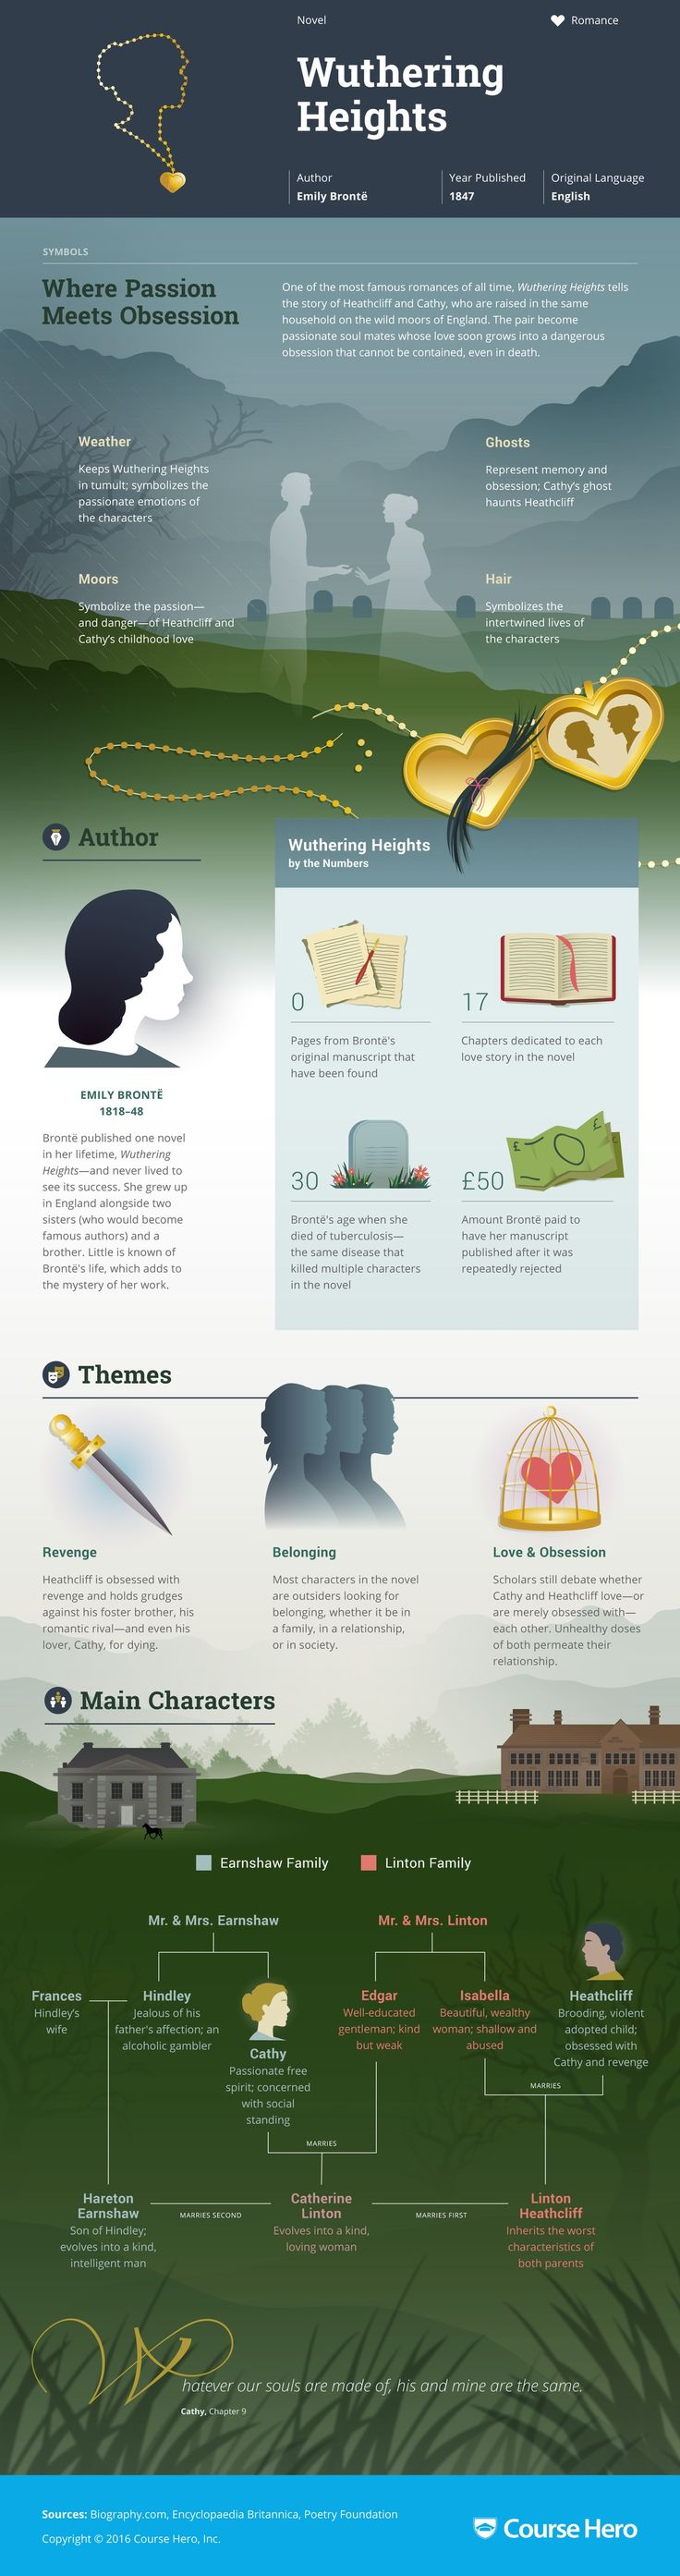 Pinterest - mutinelolita -Wuthering Heights Infographic | Course Hero